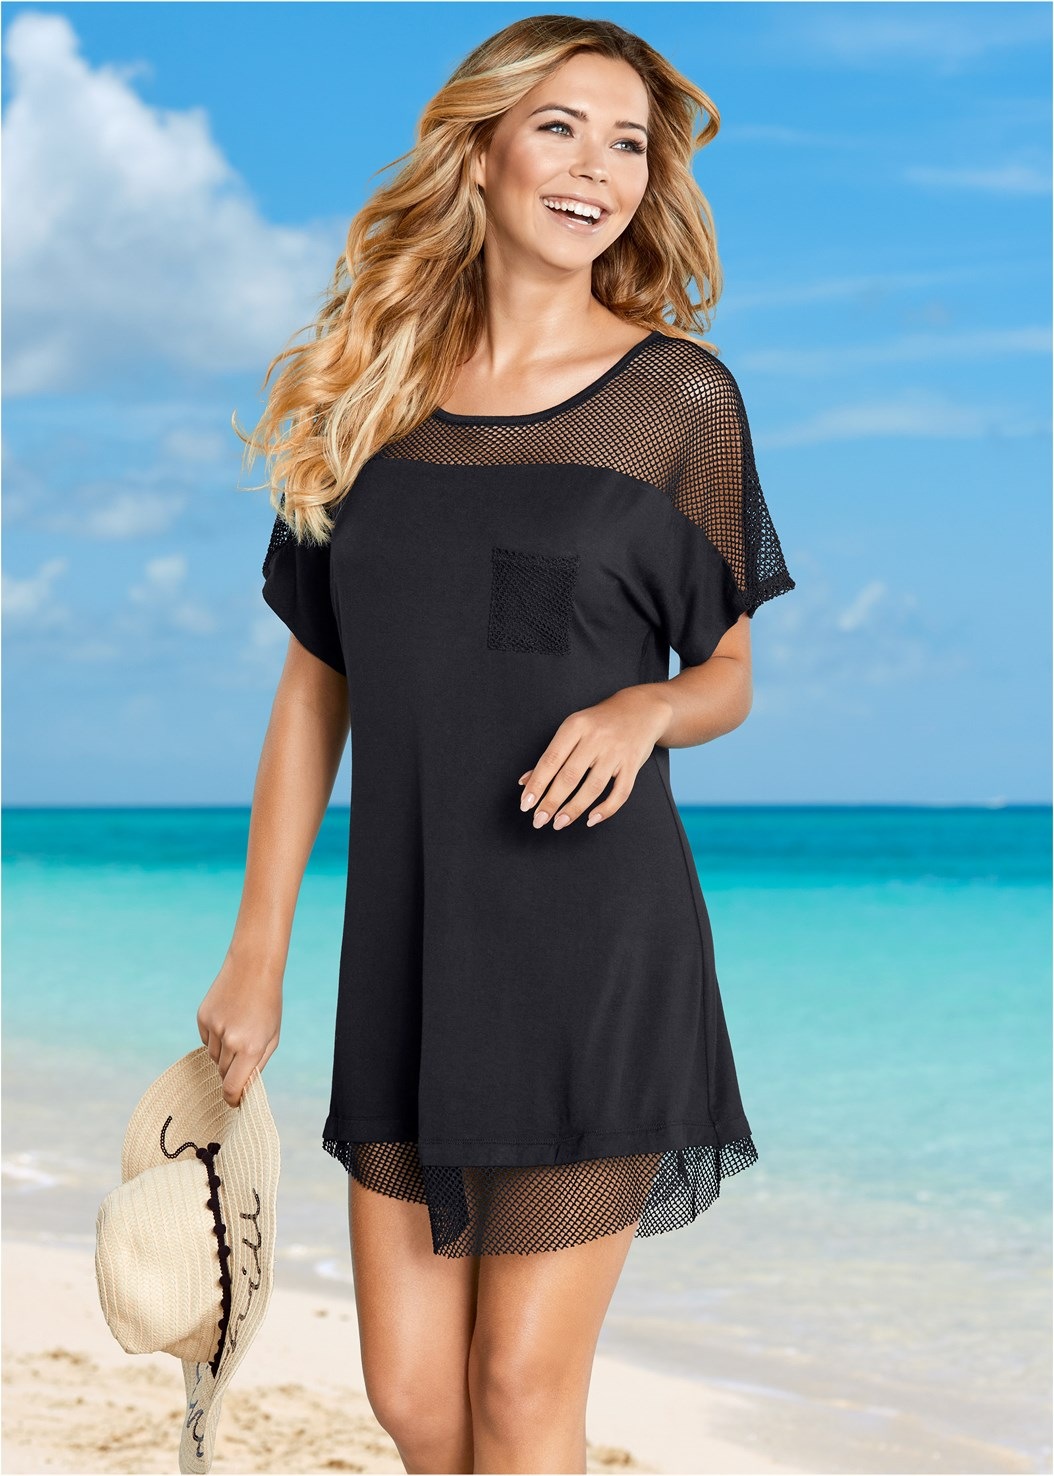 Mesh Trimmed Cover-Up Dress,Heavenly Halter Top,High Waist Bottom,Underwire Ring Top,Sally Mid Rise Bottom,Strappy Toe Ring Sandals